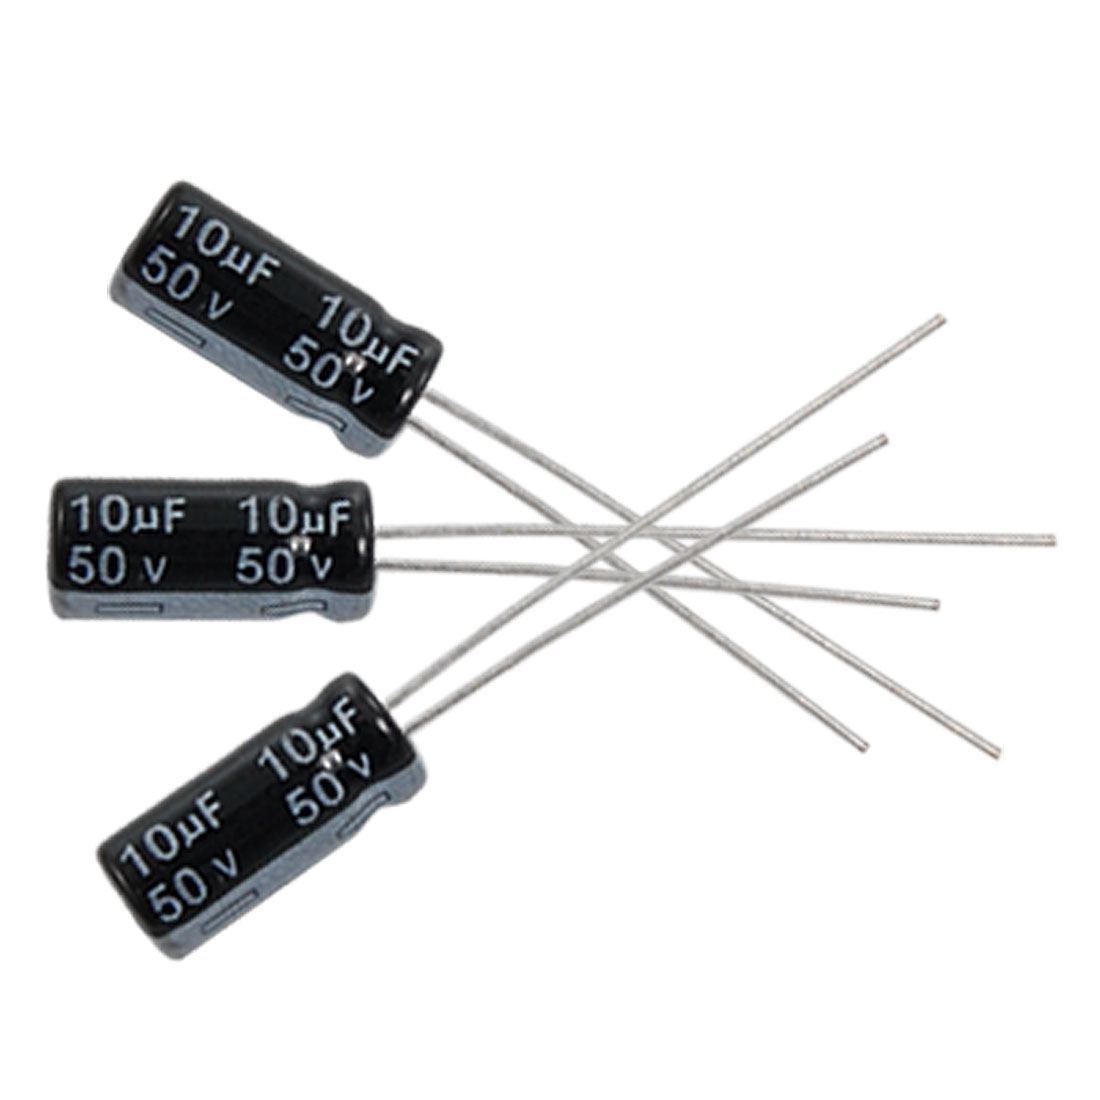 10 x 10uF 50V 105C Radial Electrolytic Capacitor 5x11mm